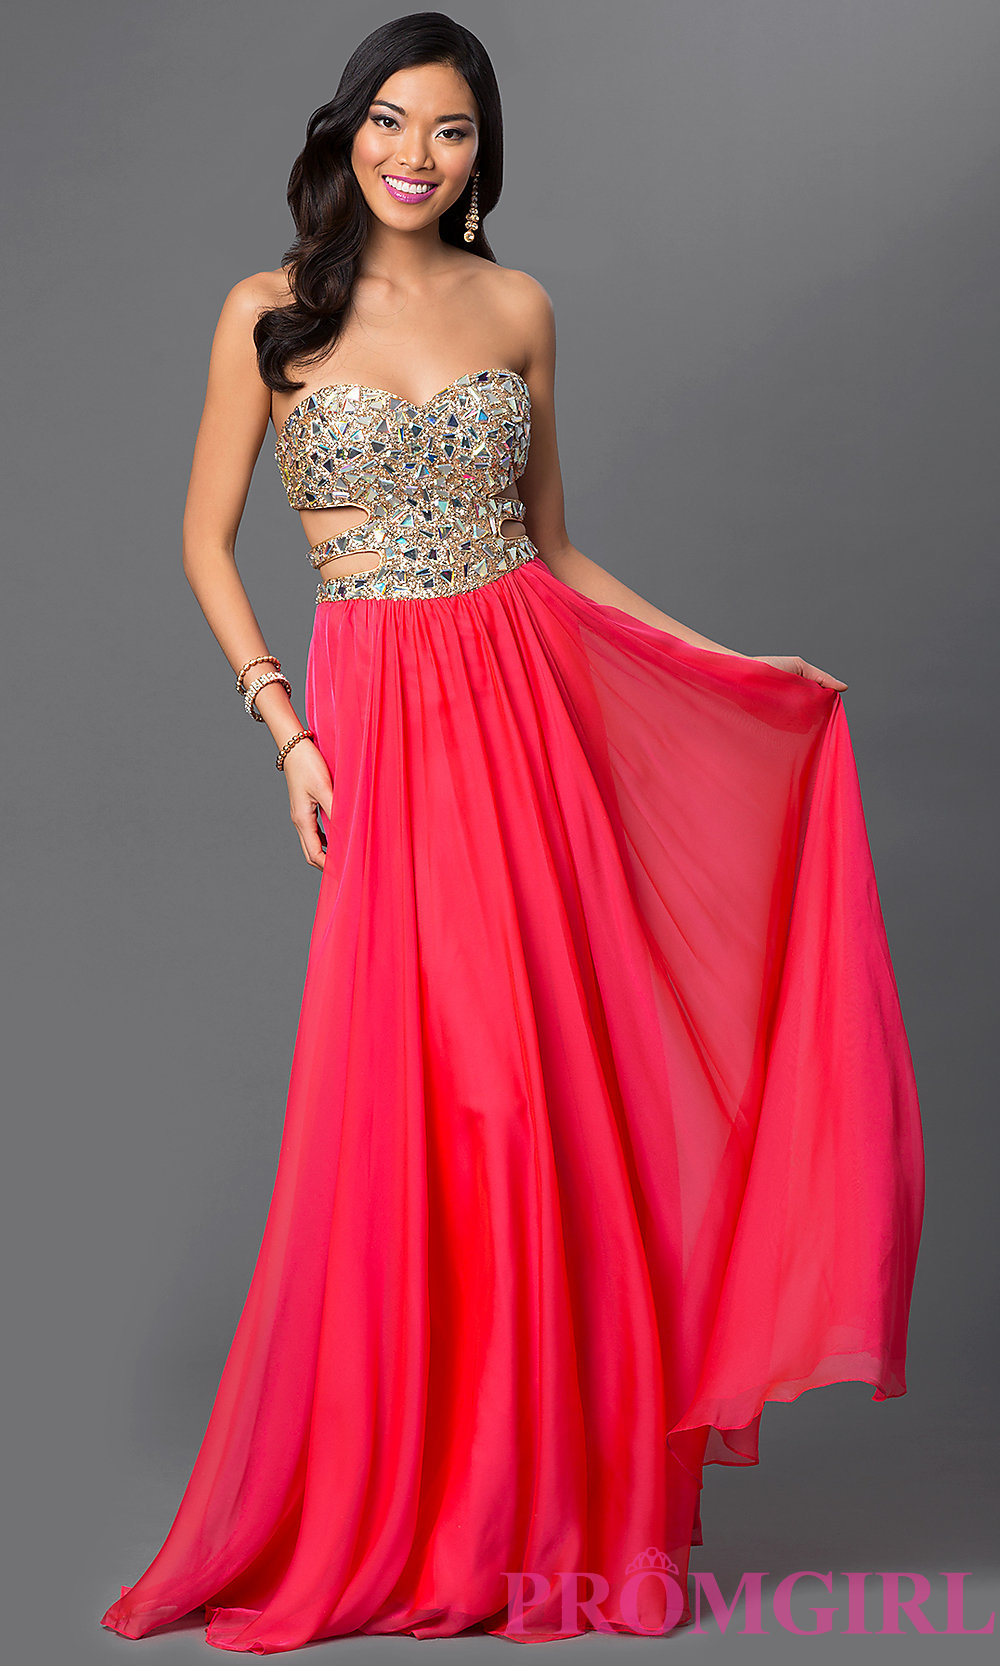 Sexy Cut Out Prom Gown La Femme Strapless Prom Dresses